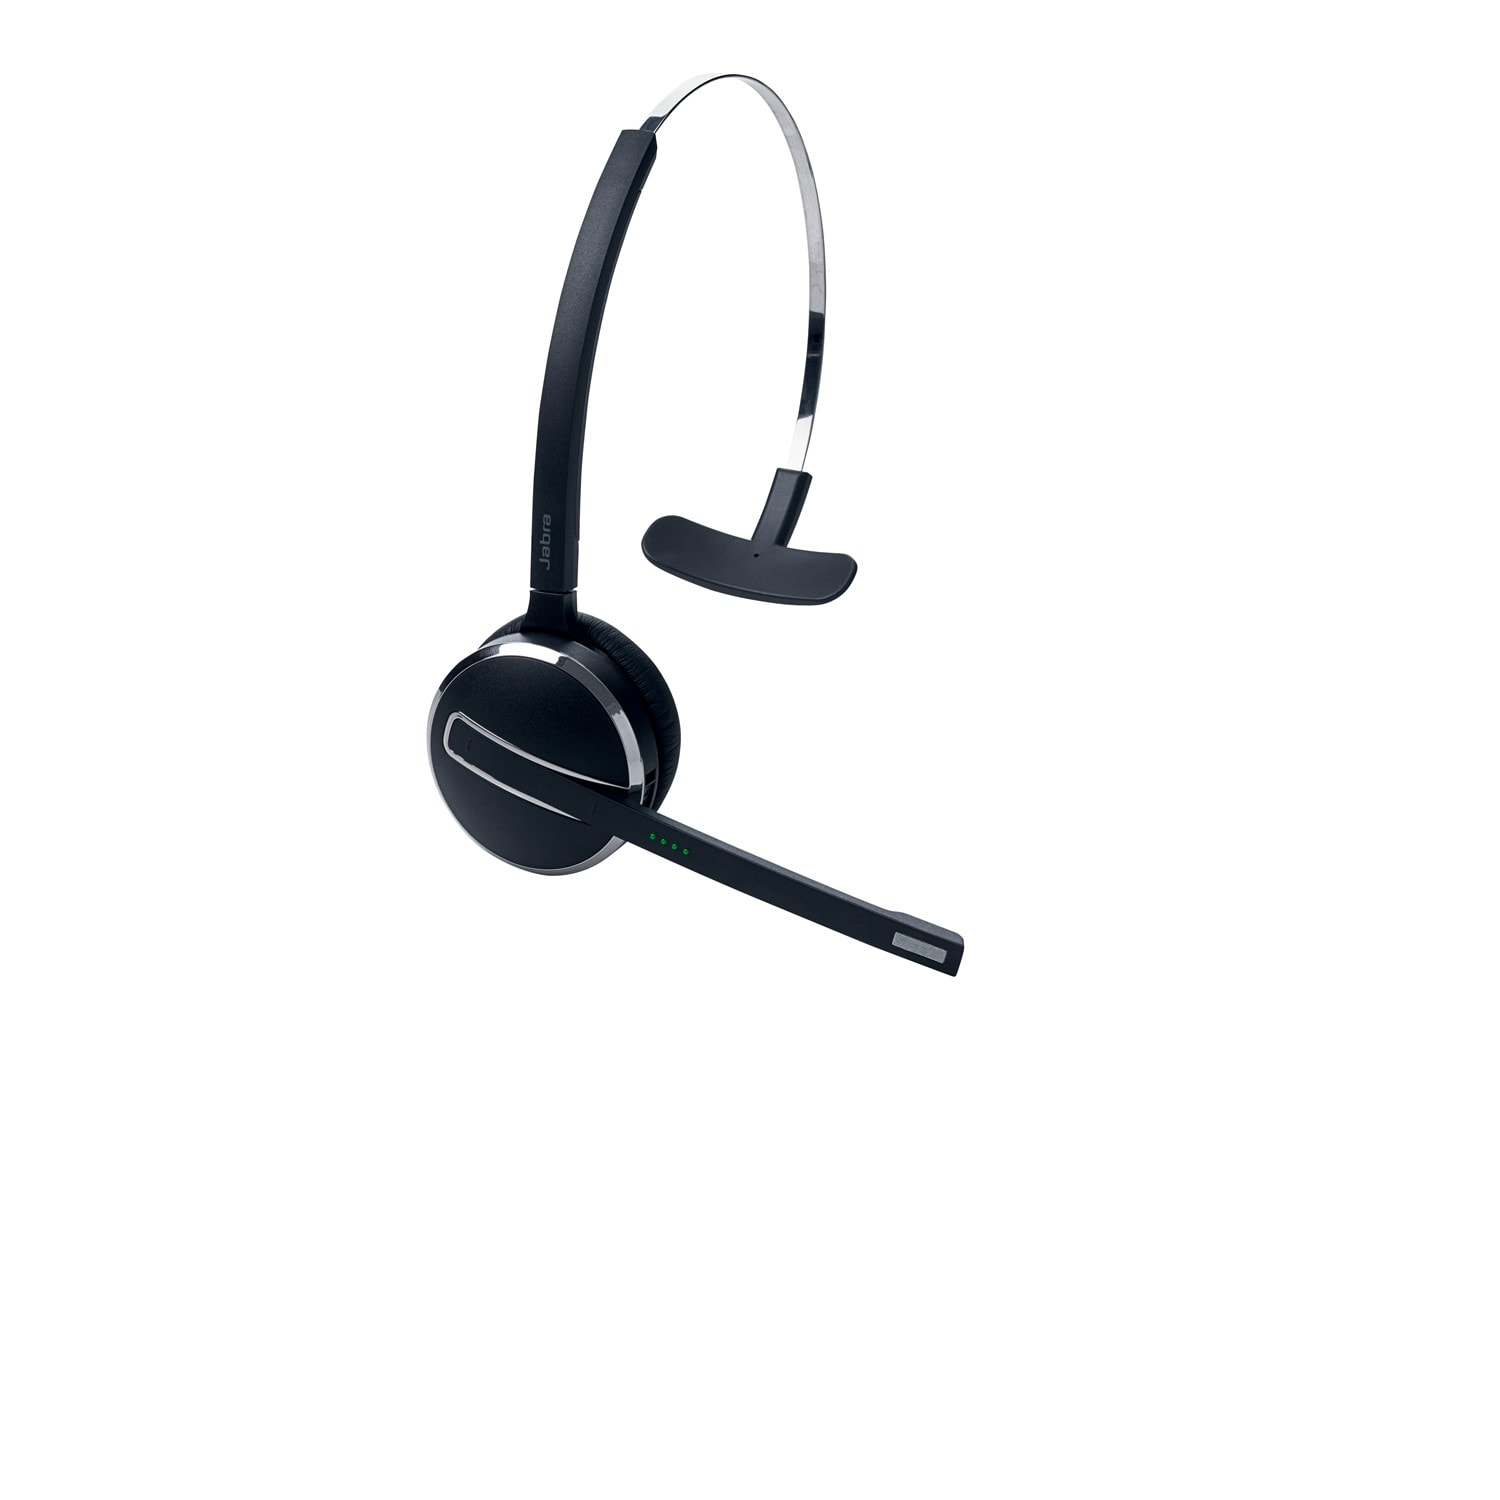 ad96af77119 Buy Jabra PRO 9470 Wired/Wireless DECT Mono Headset - Over-the-head ...